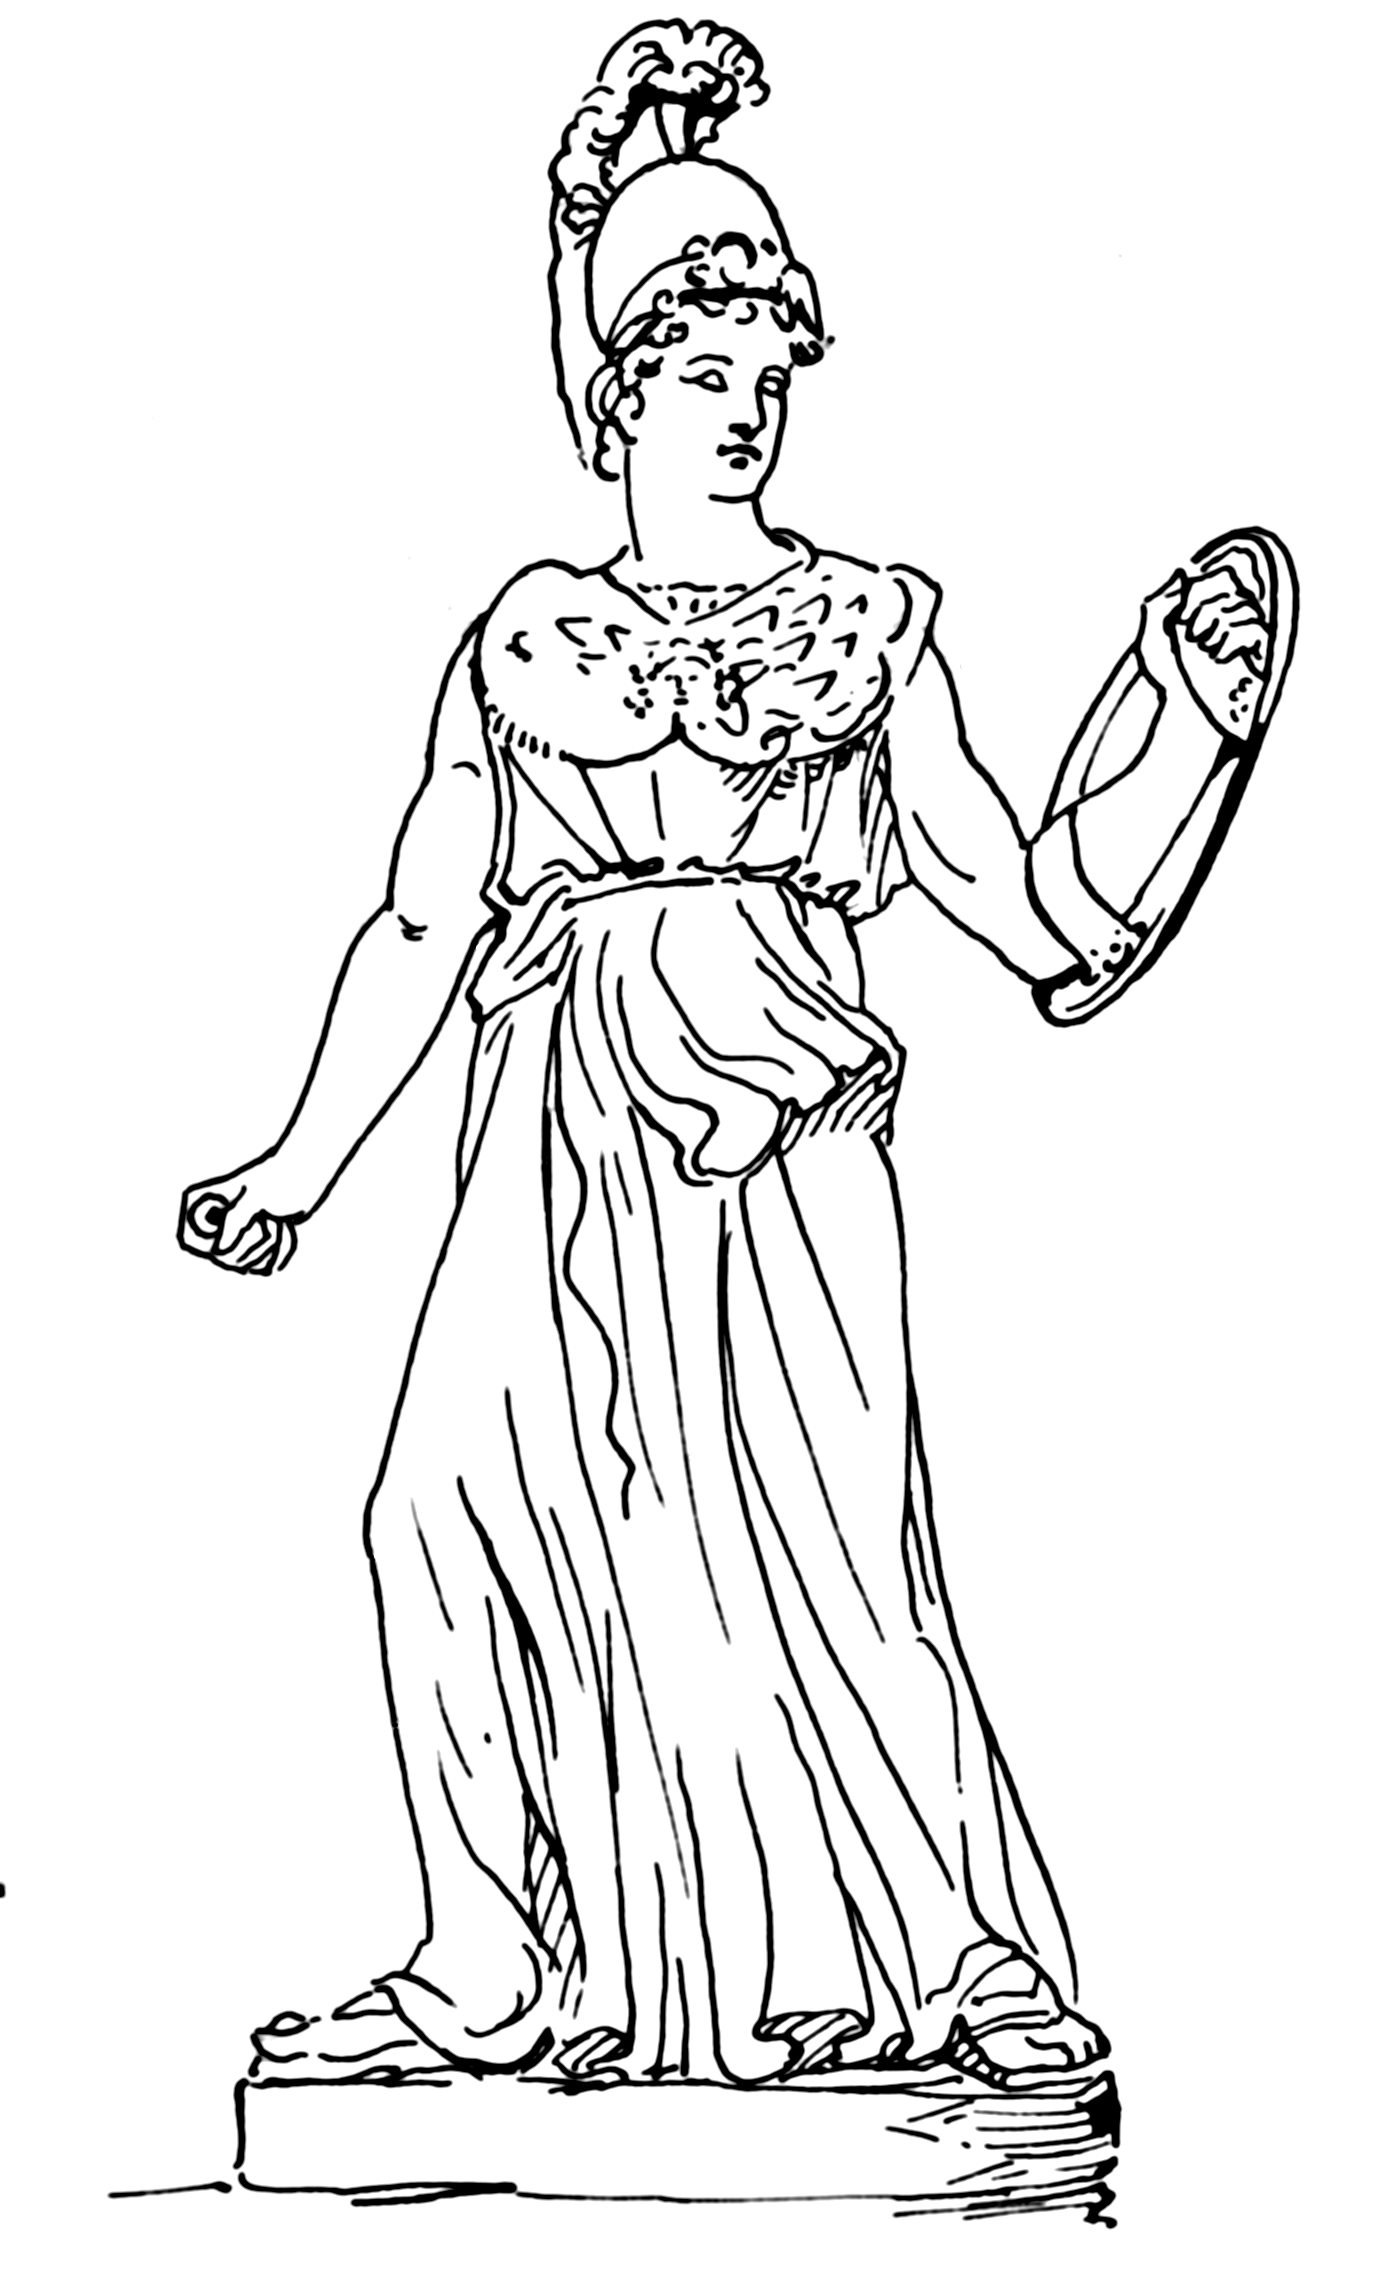 File athene psf png wikimedia commons Coloring book wiki